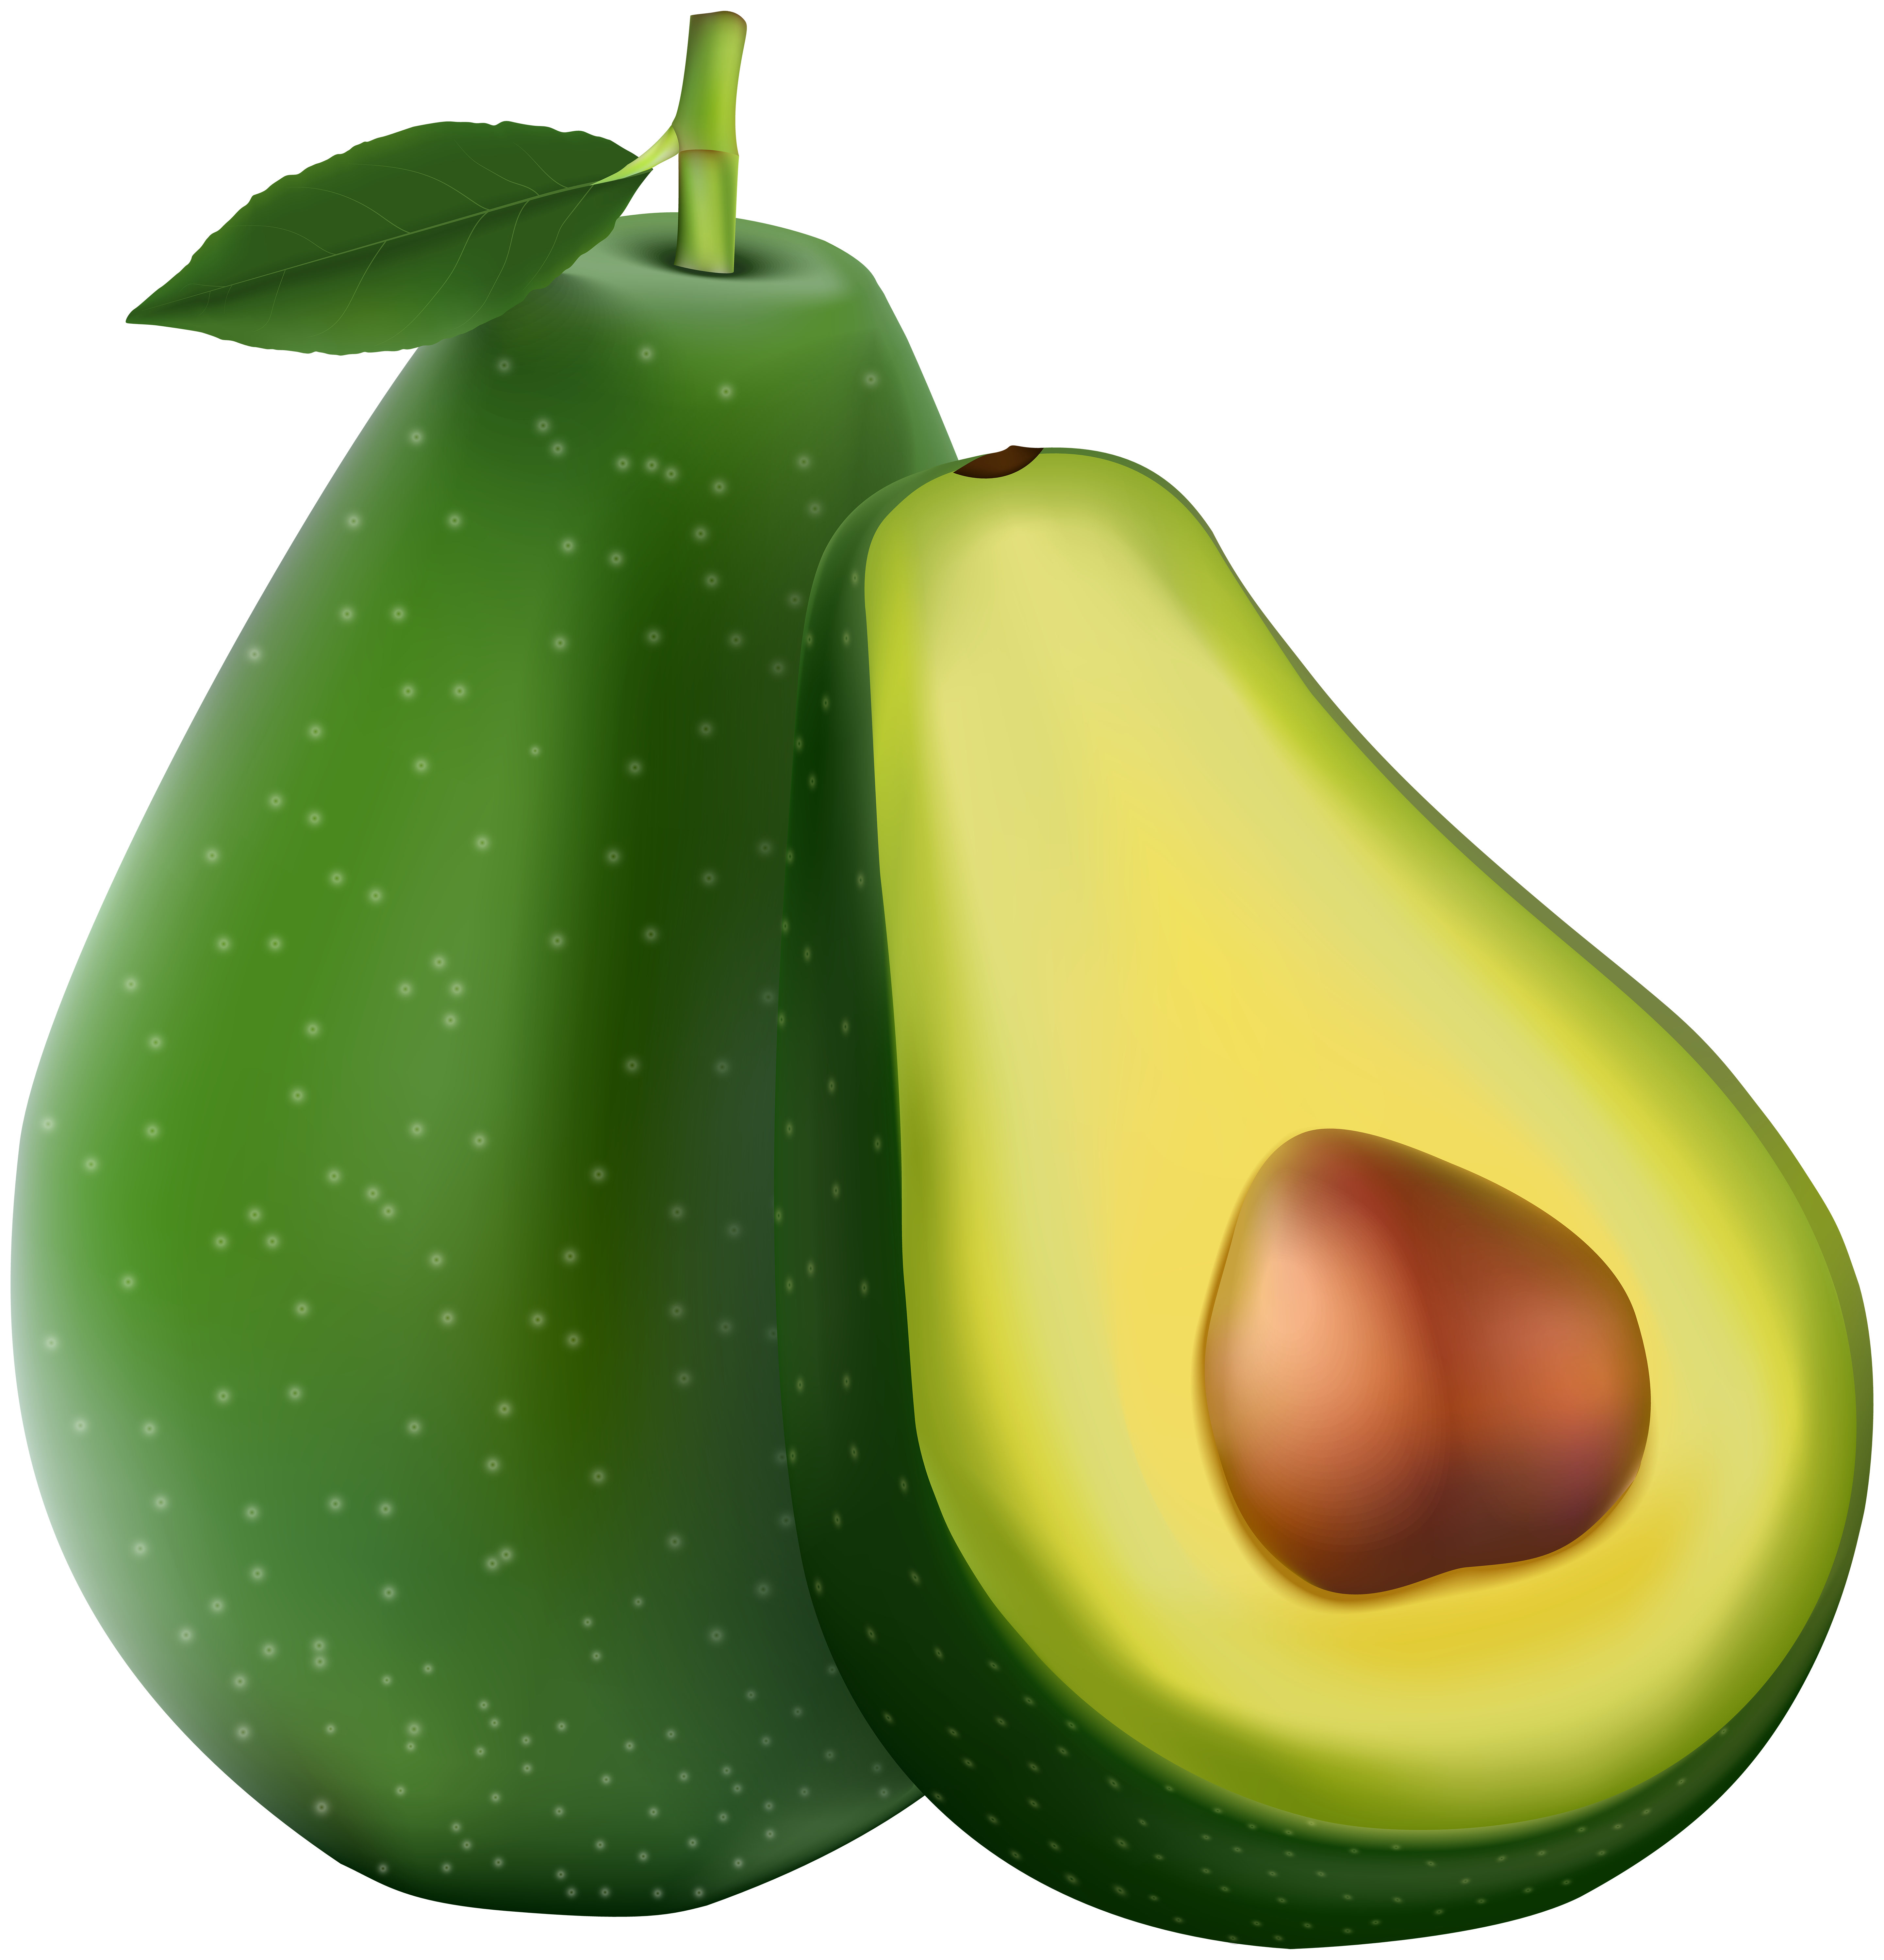 Avocado tree clipart banner library download Avocado Transparent PNG Image   Gallery Yopriceville - High-Quality ... banner library download